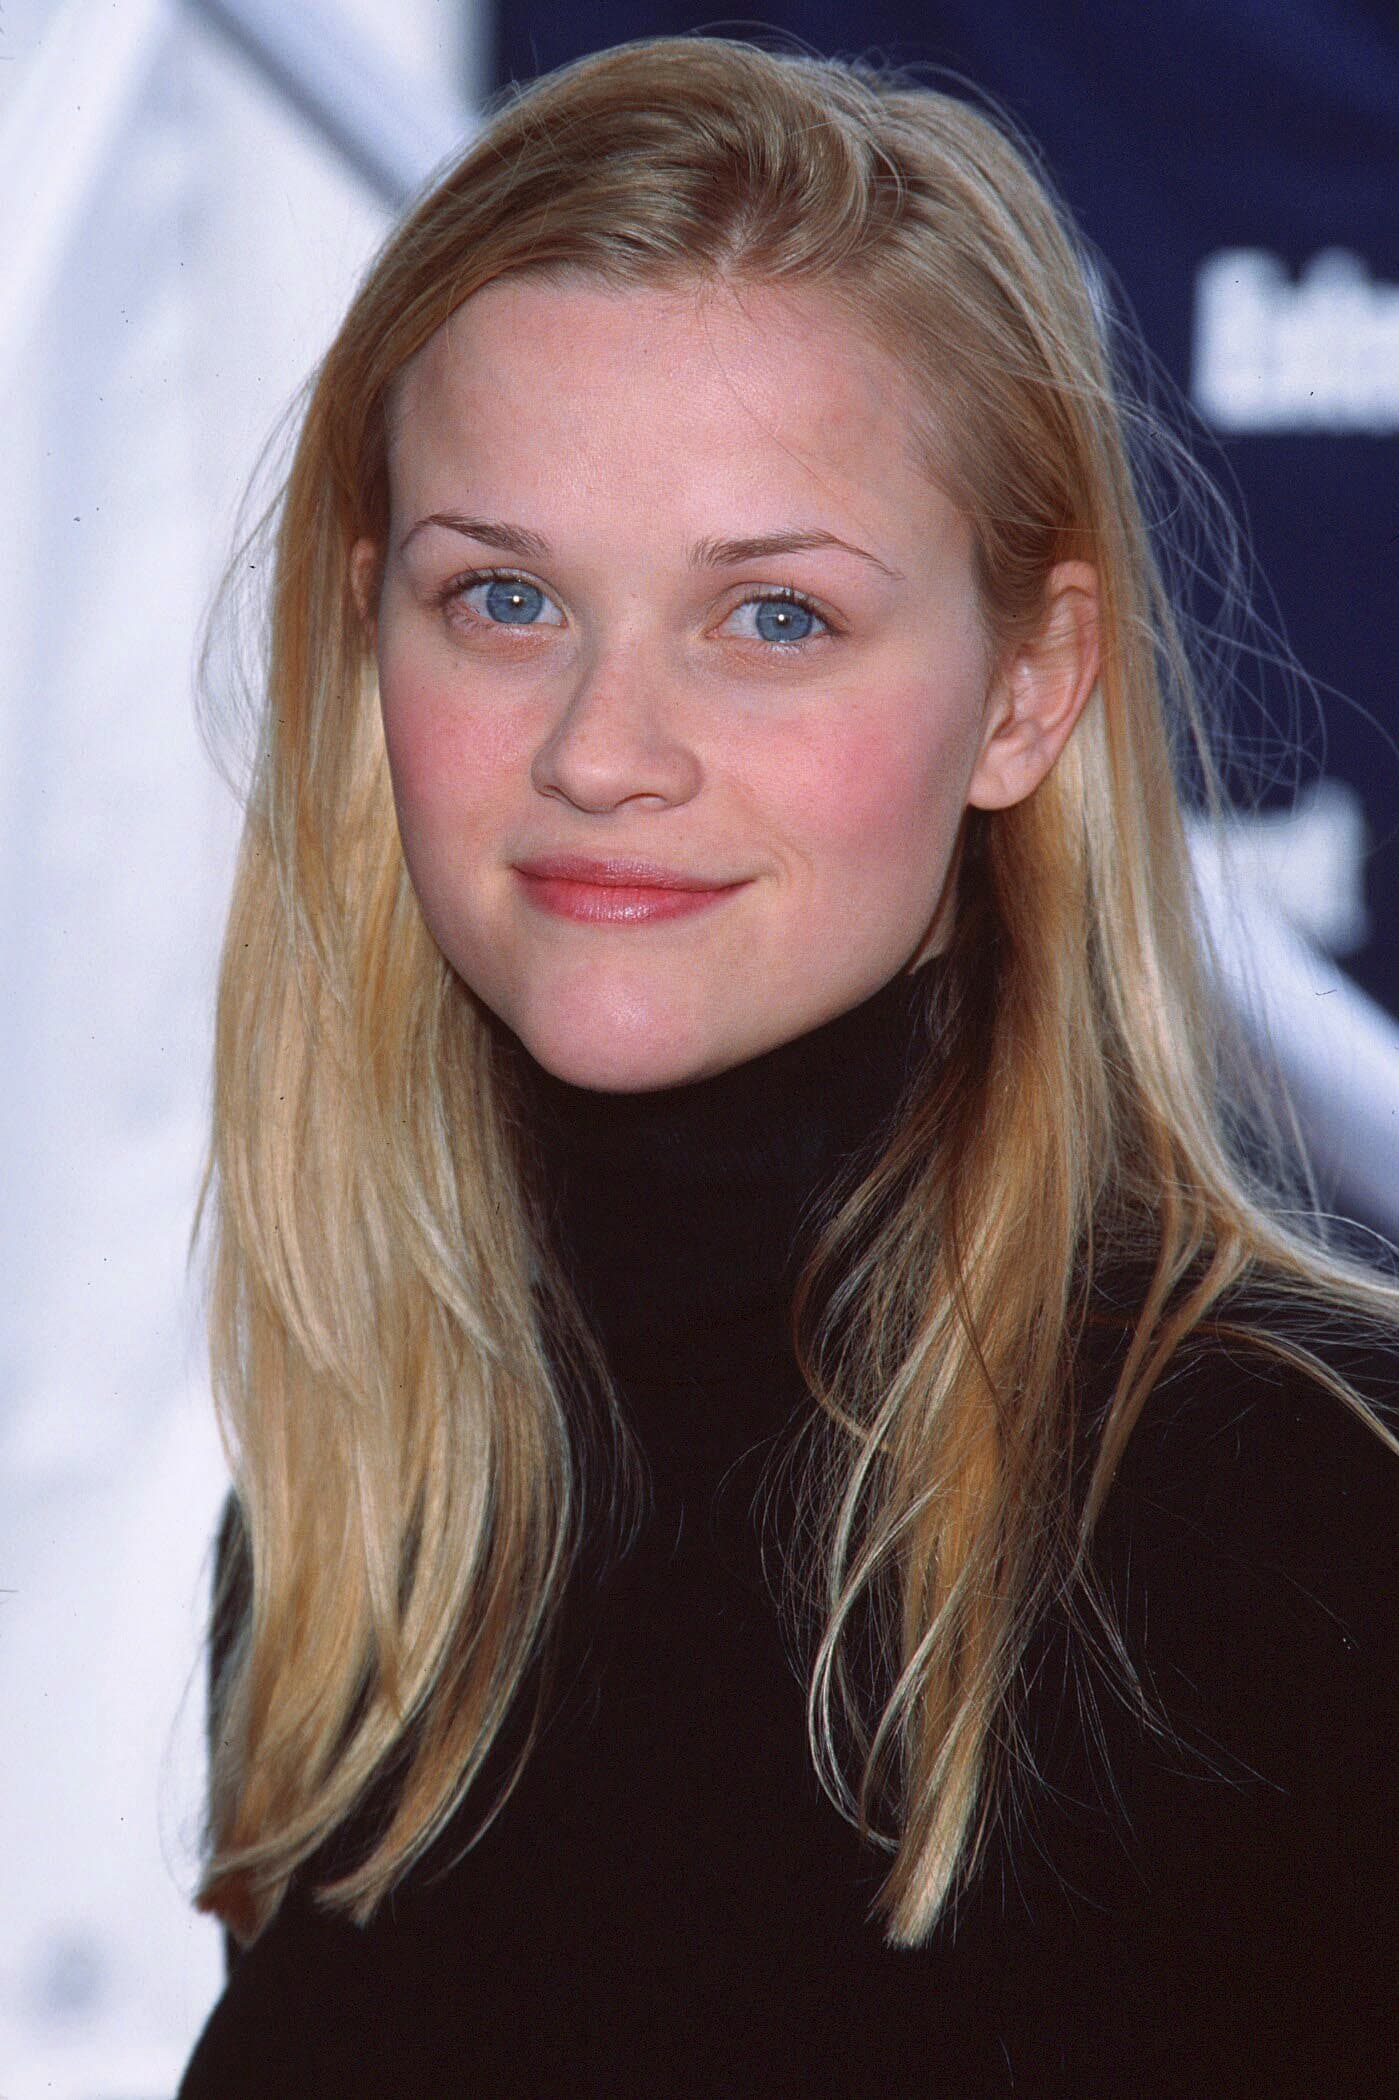 Reese Witherspoon Before Plastic Surgery photo - 1